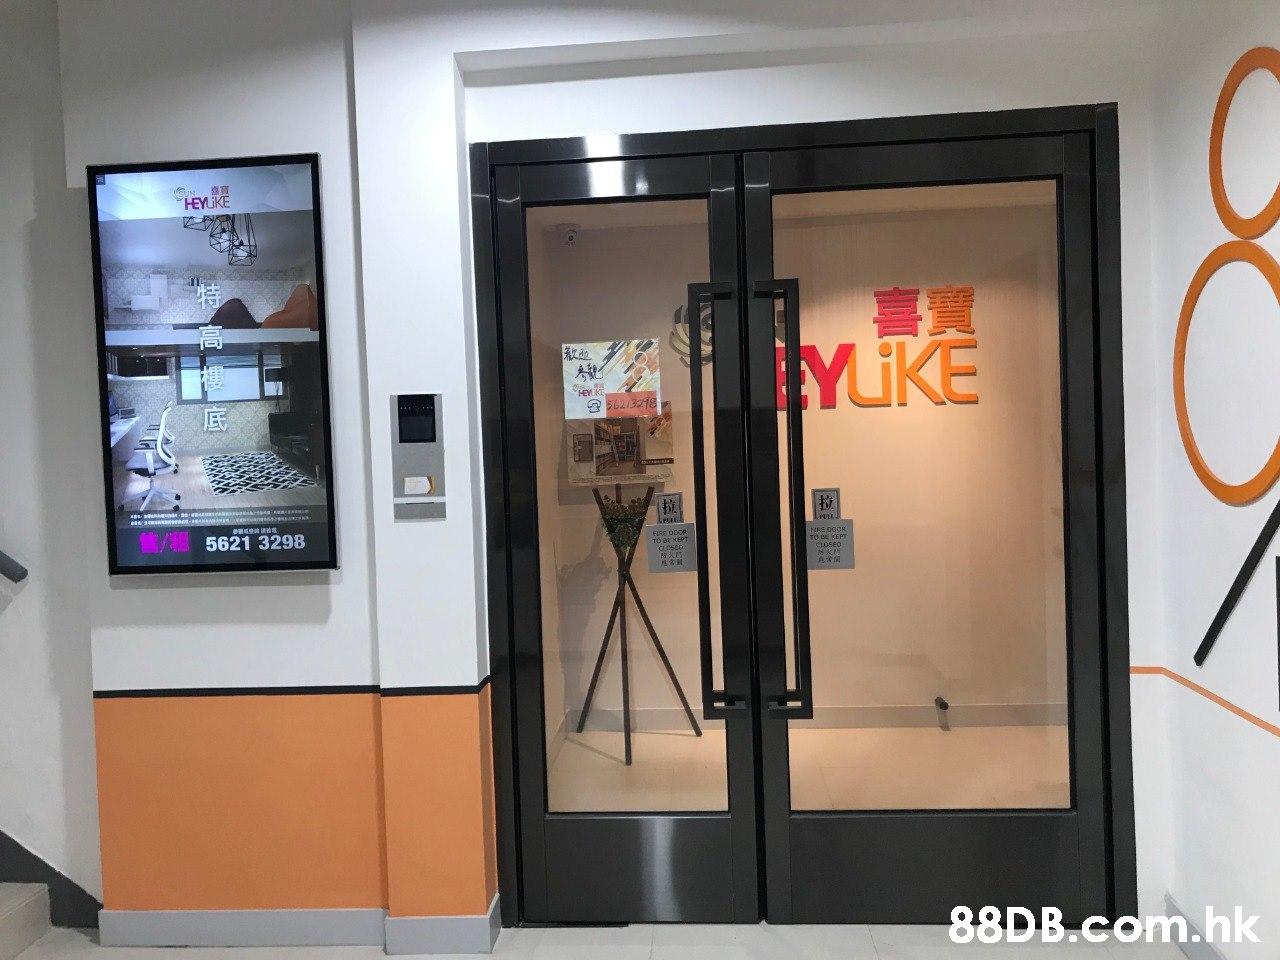 HEYUKE YLKE EL213218 拉 Y 5621 3298 .hk  Door,Glass,Room,Automotive exterior,Advertising